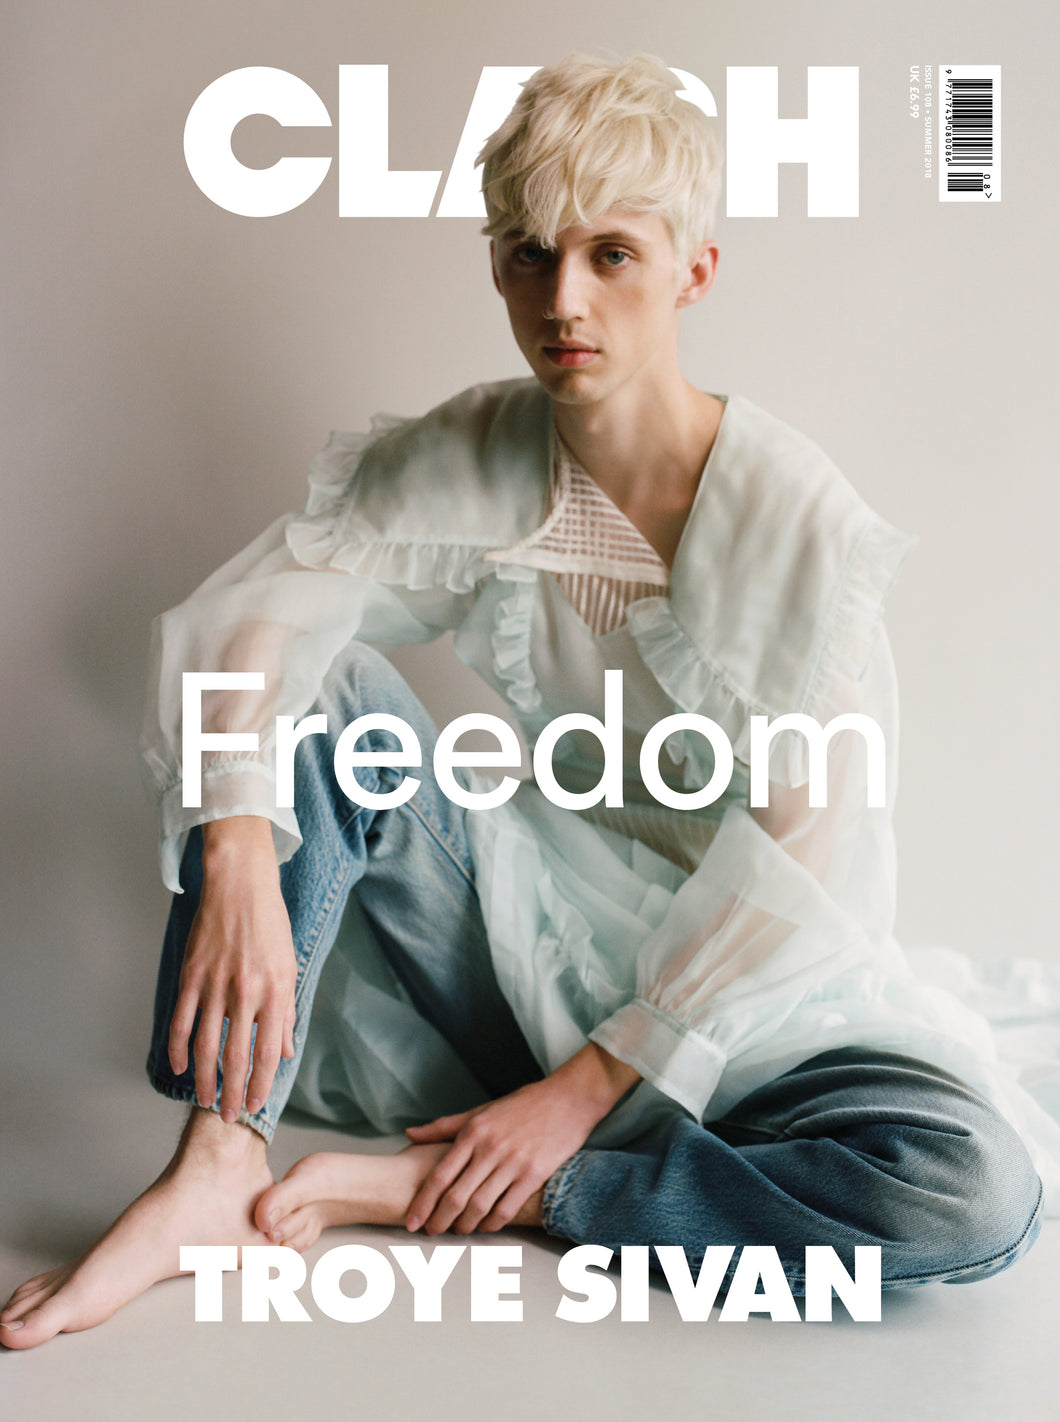 Clash Issue 108 Troye Sivan